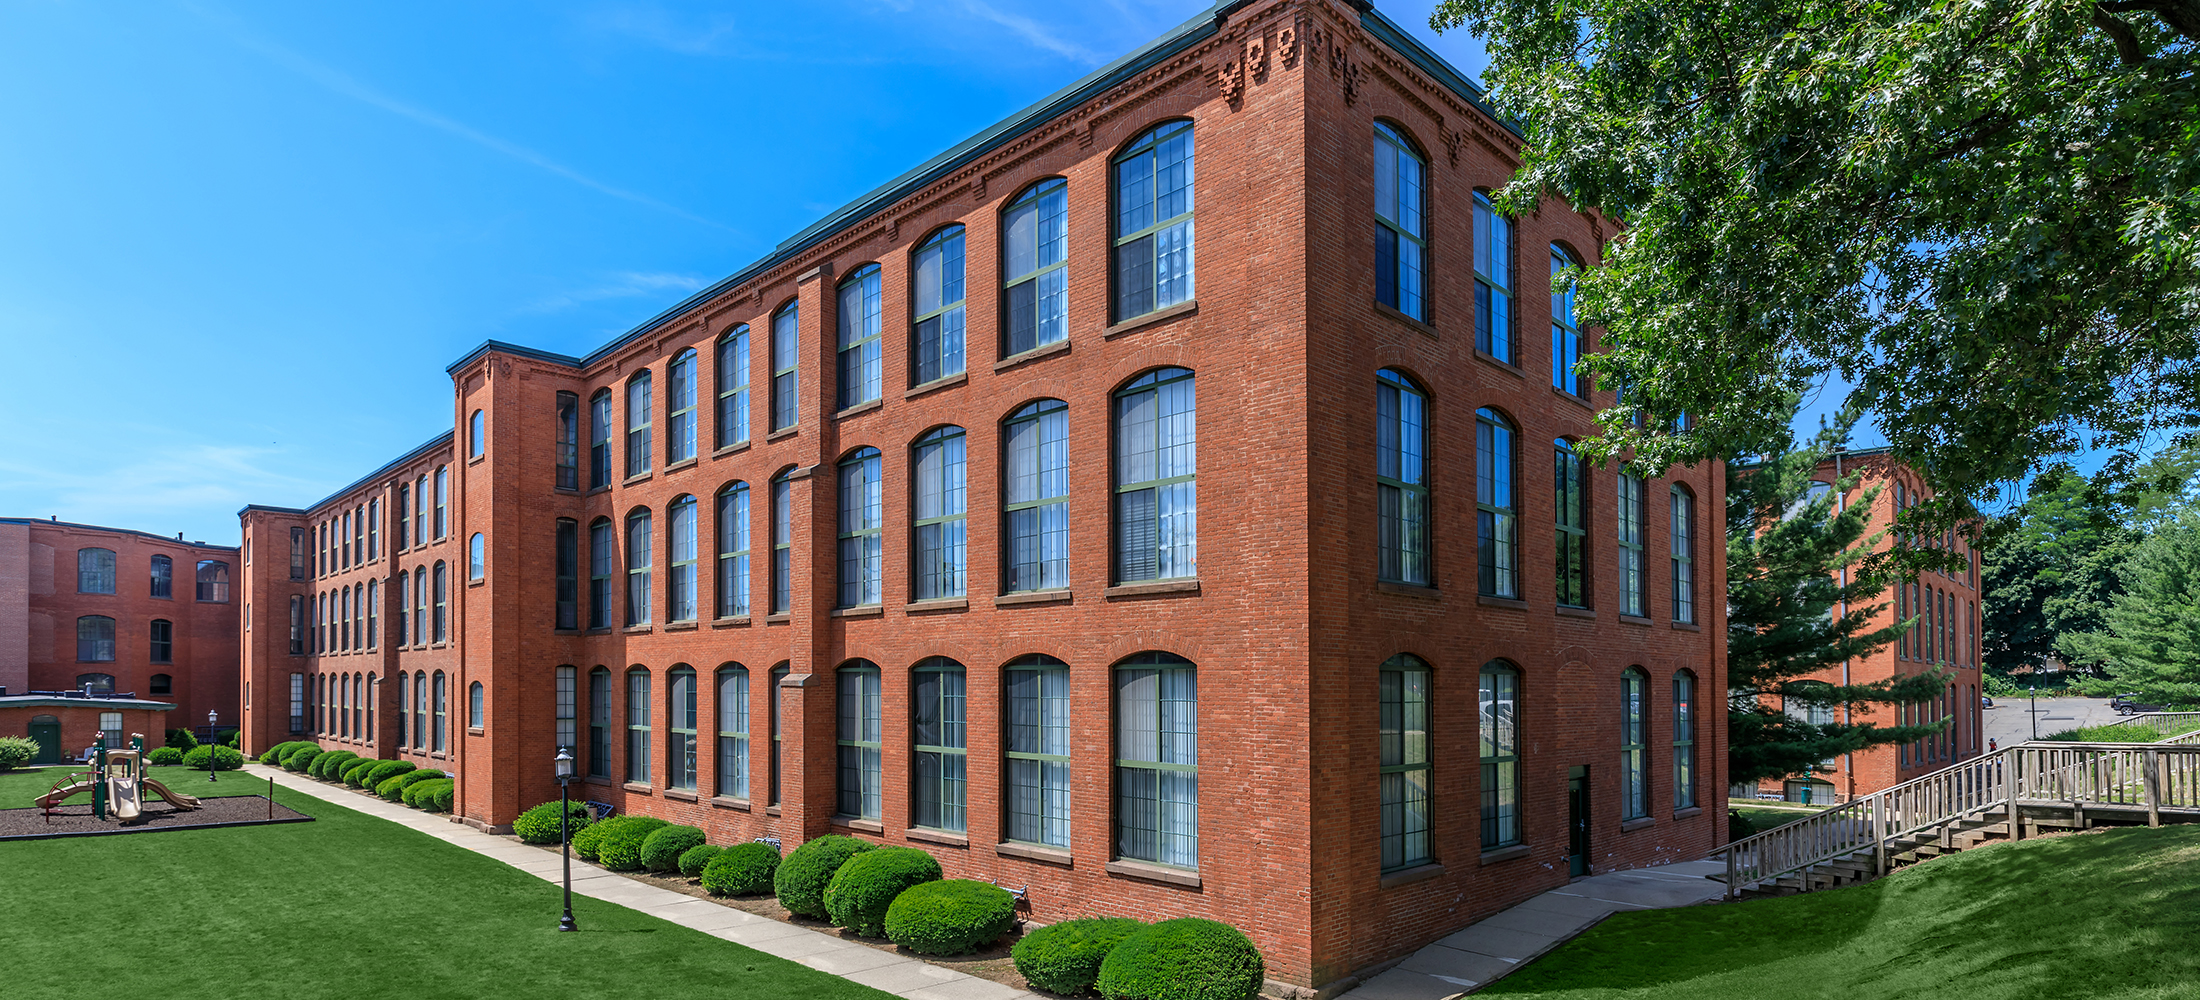 100 Homes For Rent In Ct 20 Best 2 Bedroom Apartments In Lakewood Co With Pics Apartments For